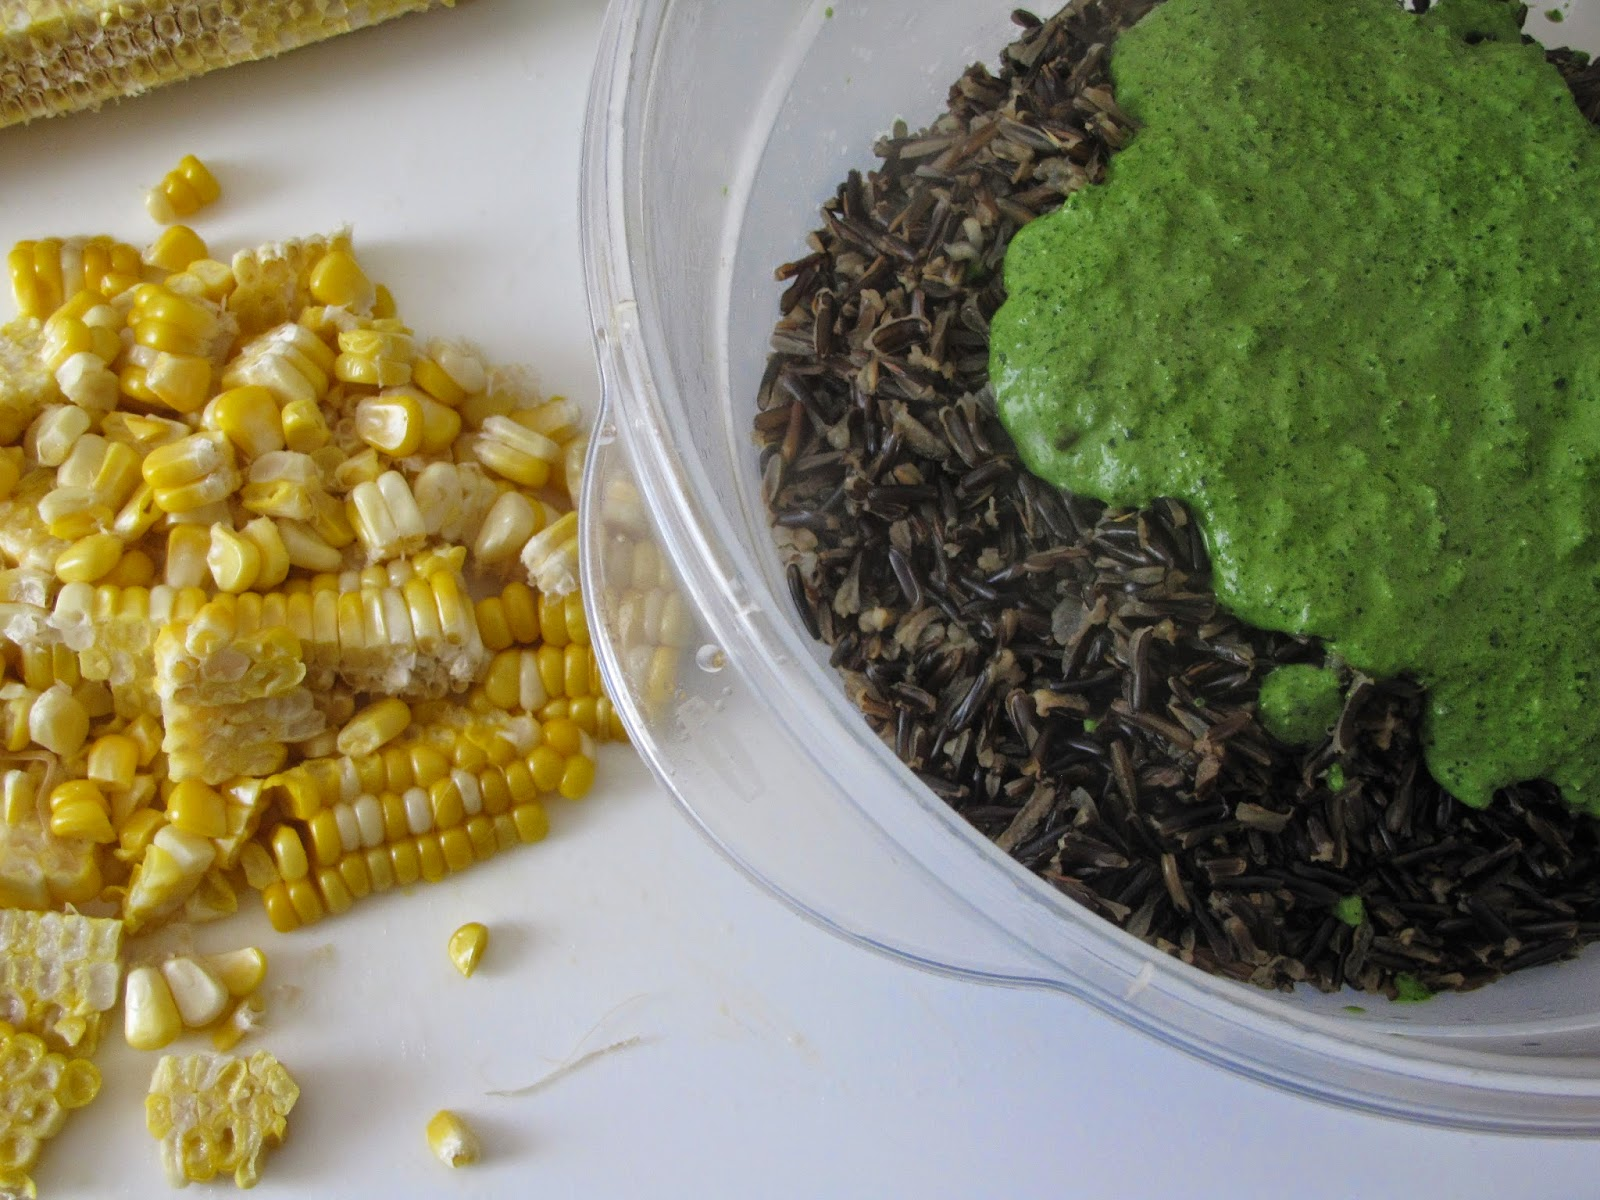 Pesto splashed on wild rice in bowl and corn kernels on a white board